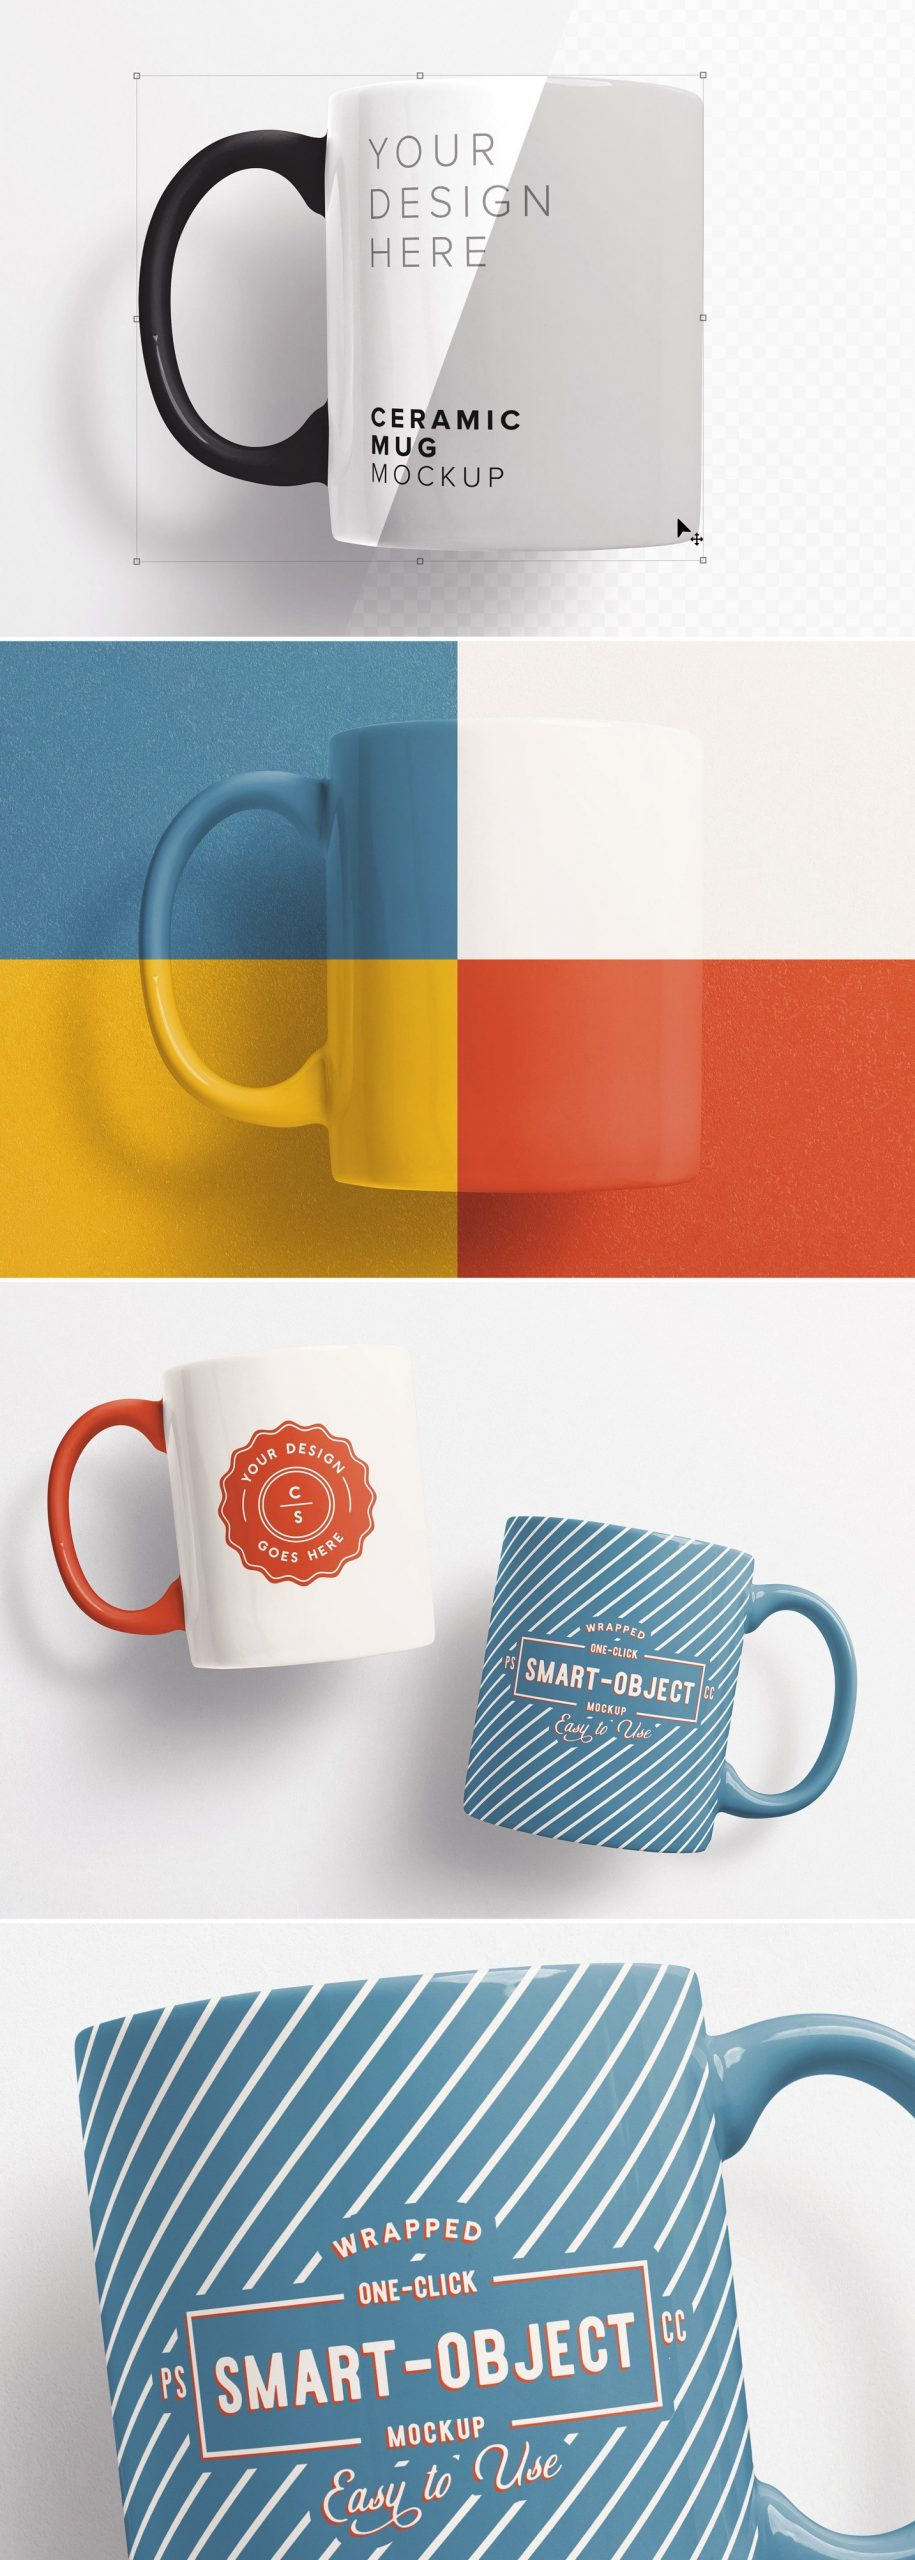 ceramic mugs mockup preview1 1 scaled